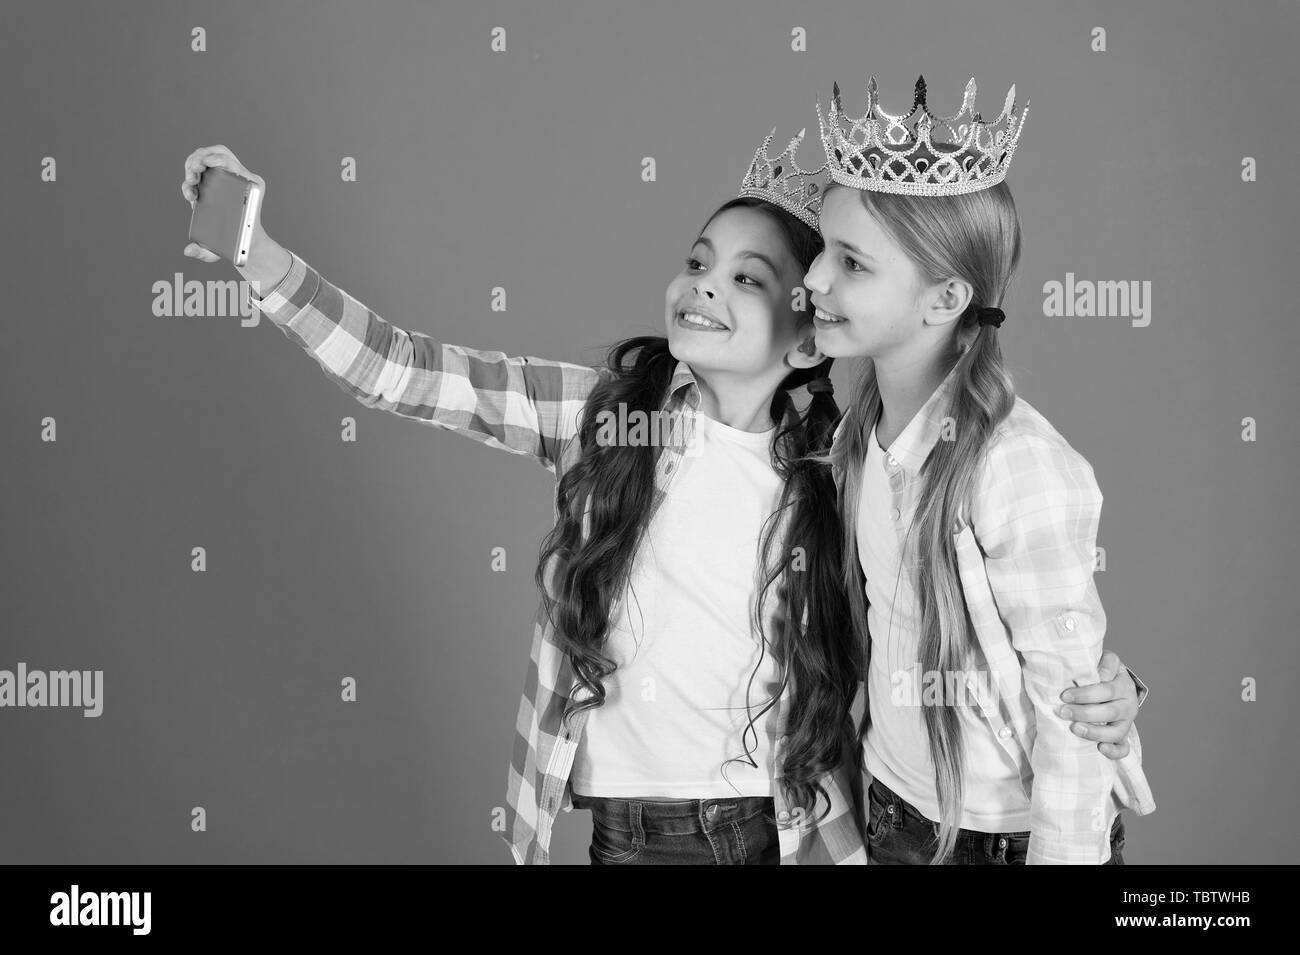 Kids wear golden crowns symbol princess. Warning signs of spoiled child. Avoid raising spoiled kids. Girls taking selfie photo smartphone camera. Spoiled children concept. Demand more attention. - Stock Image